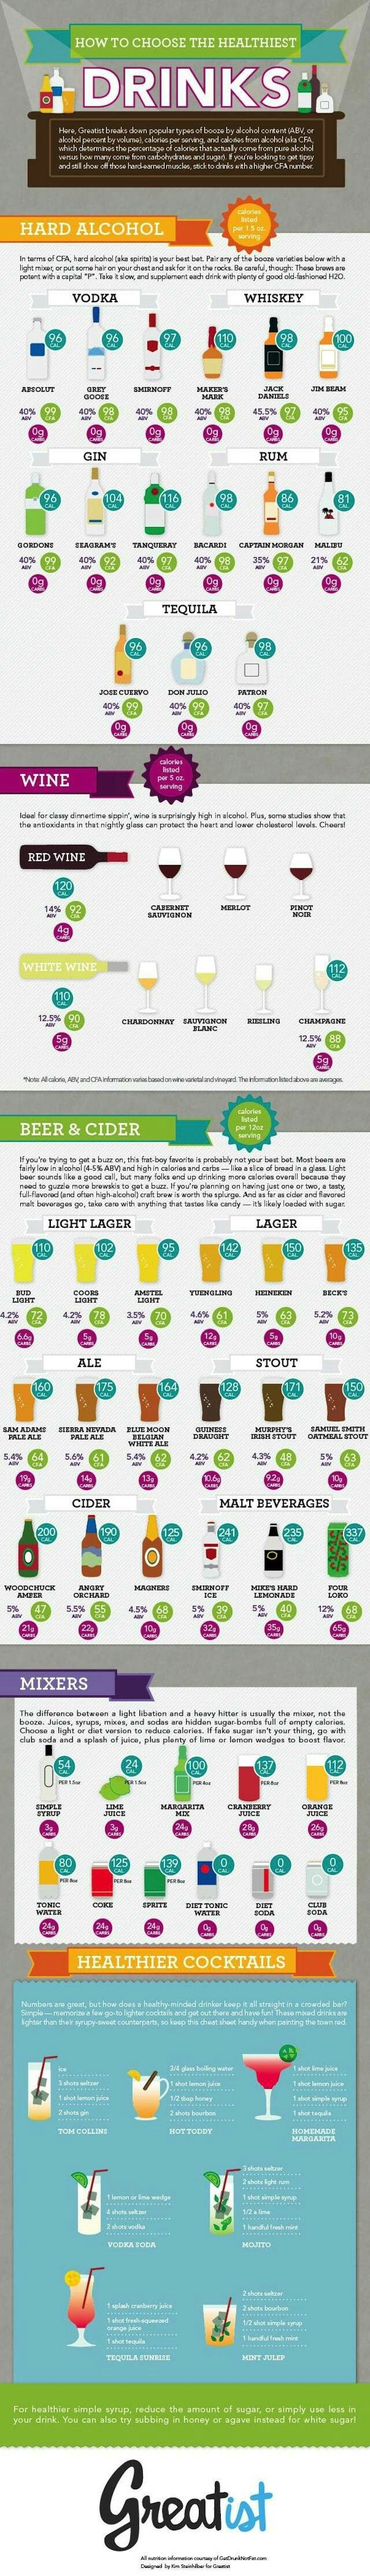 How To Choose Healthiest Alcoholic Drinks